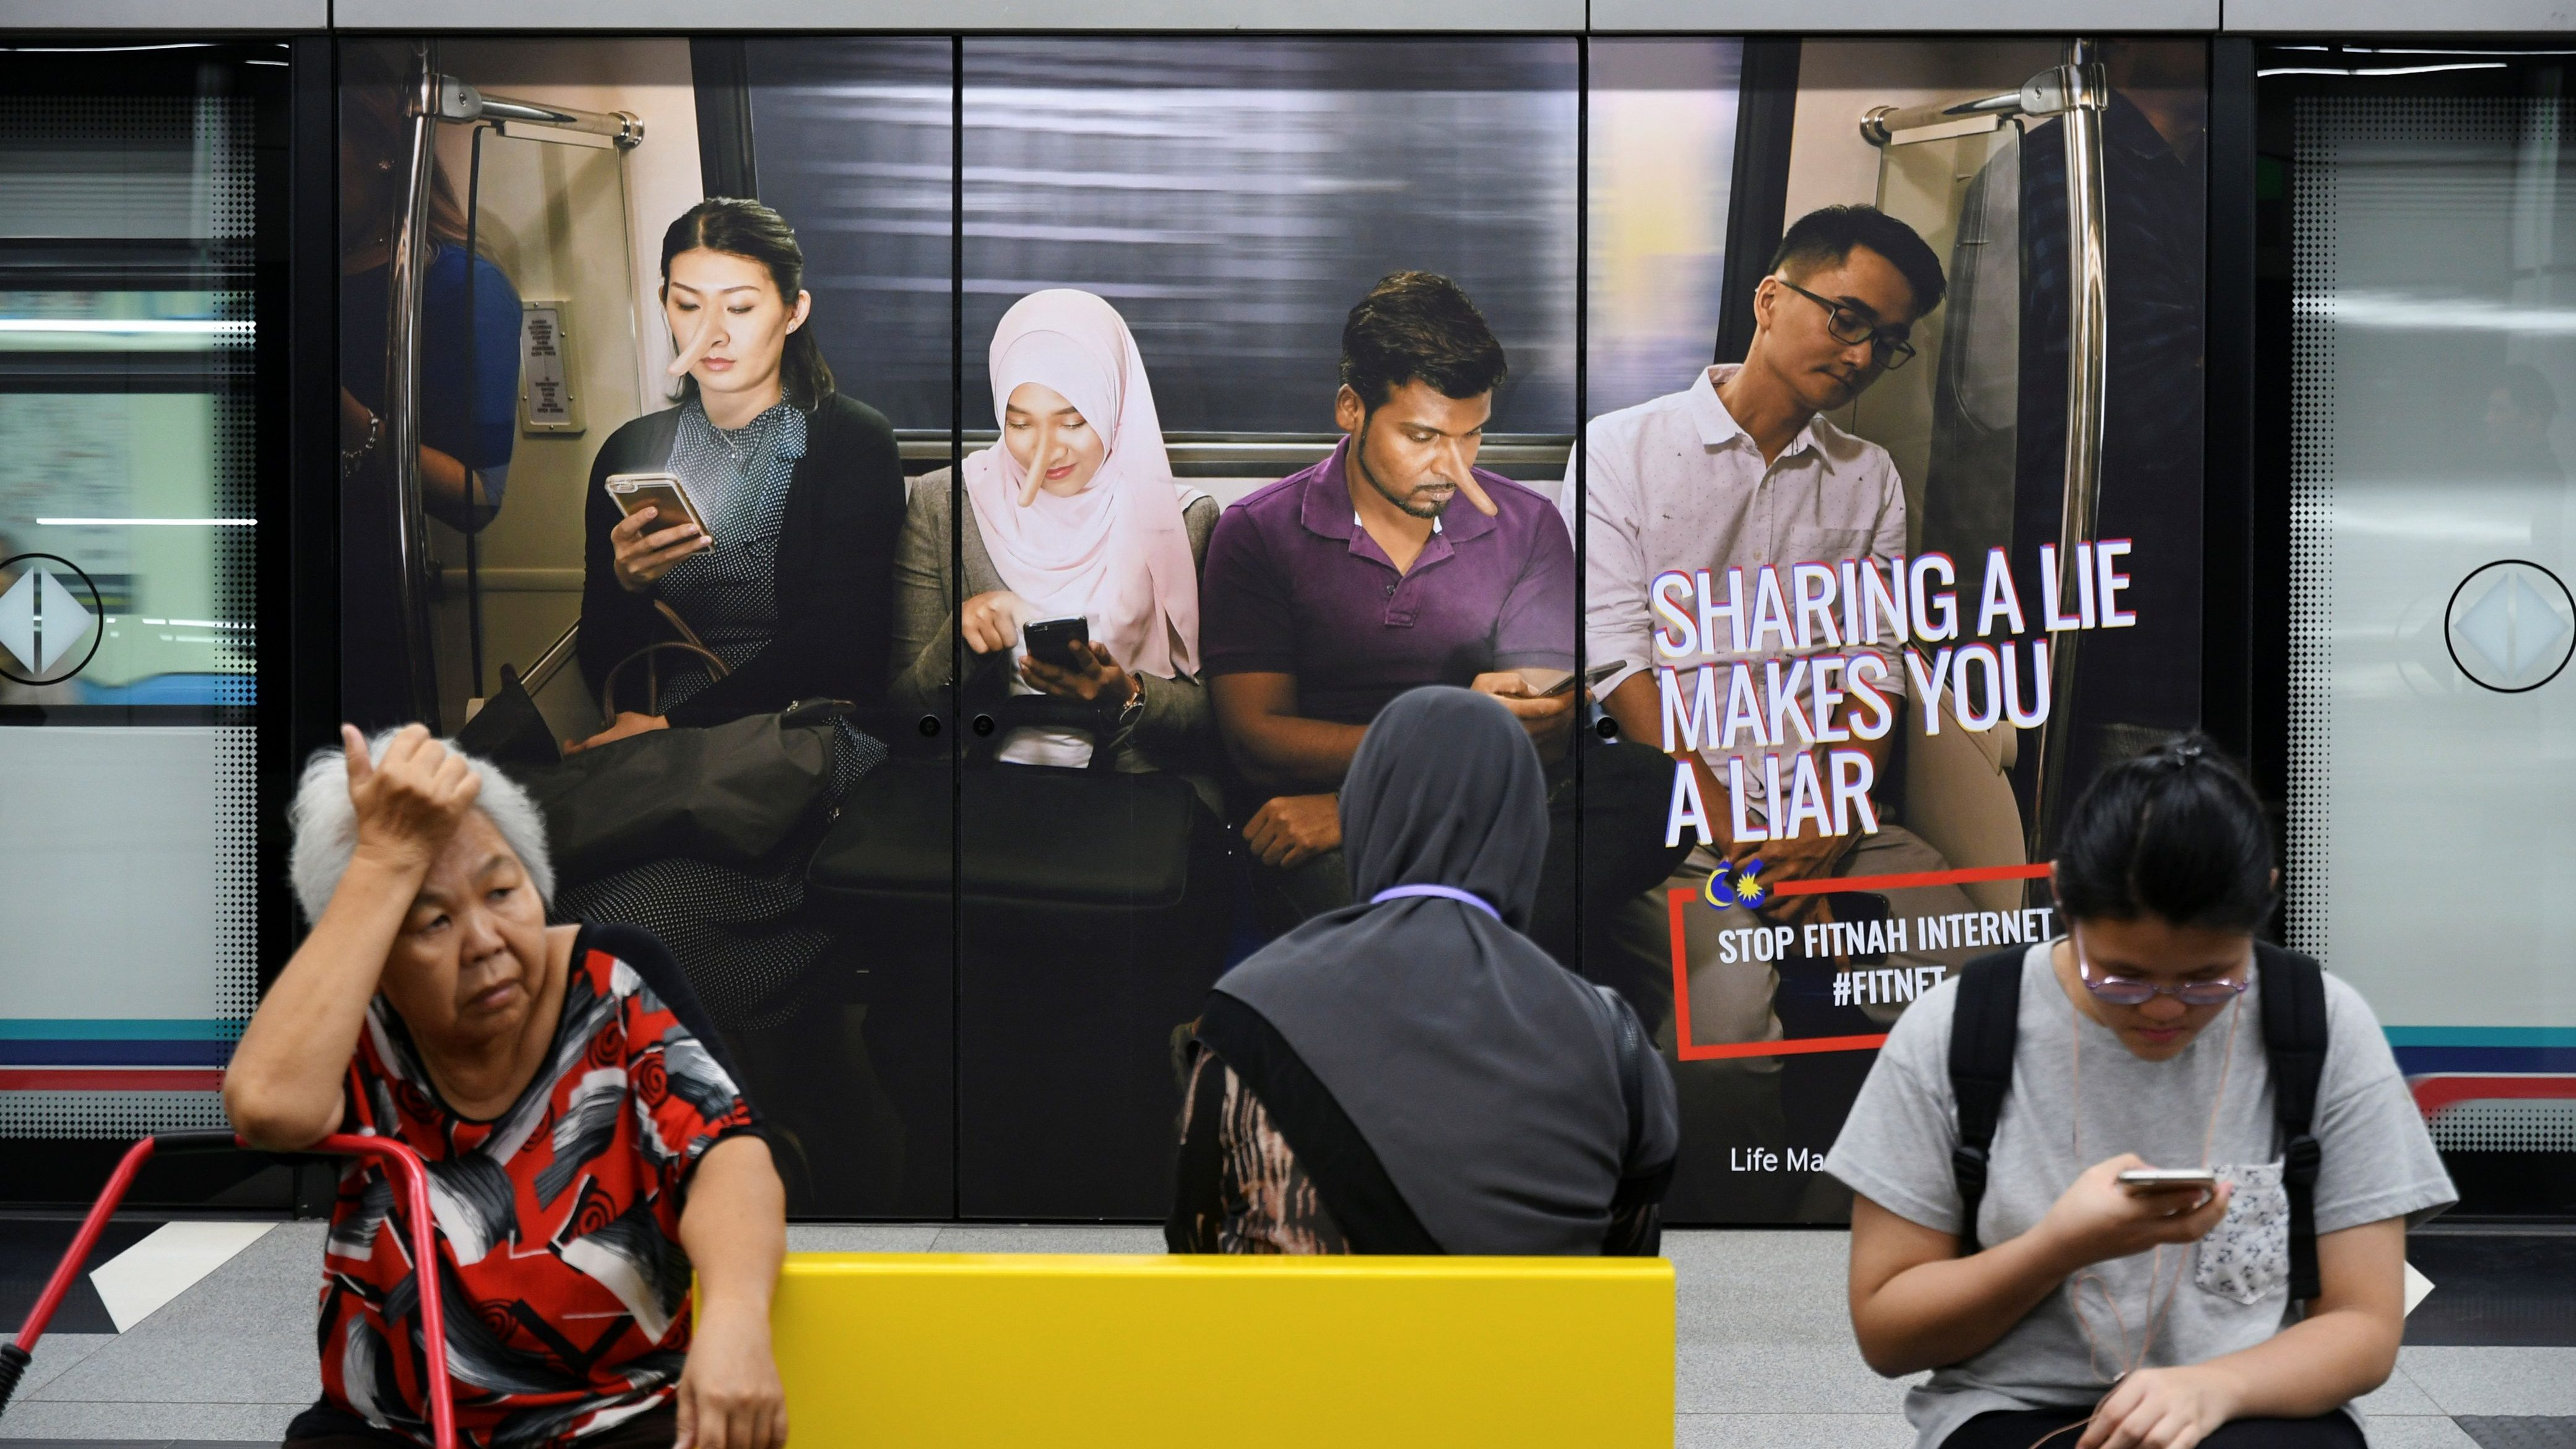 Commuters sit in front of an advertisement discouraging the dissemination of fake news, at a train station in Kuala Lumpur, Malaysia March 28, 2018. Picture taken March 28, 2018. REUTERS/Stringer - RC1DC110C000